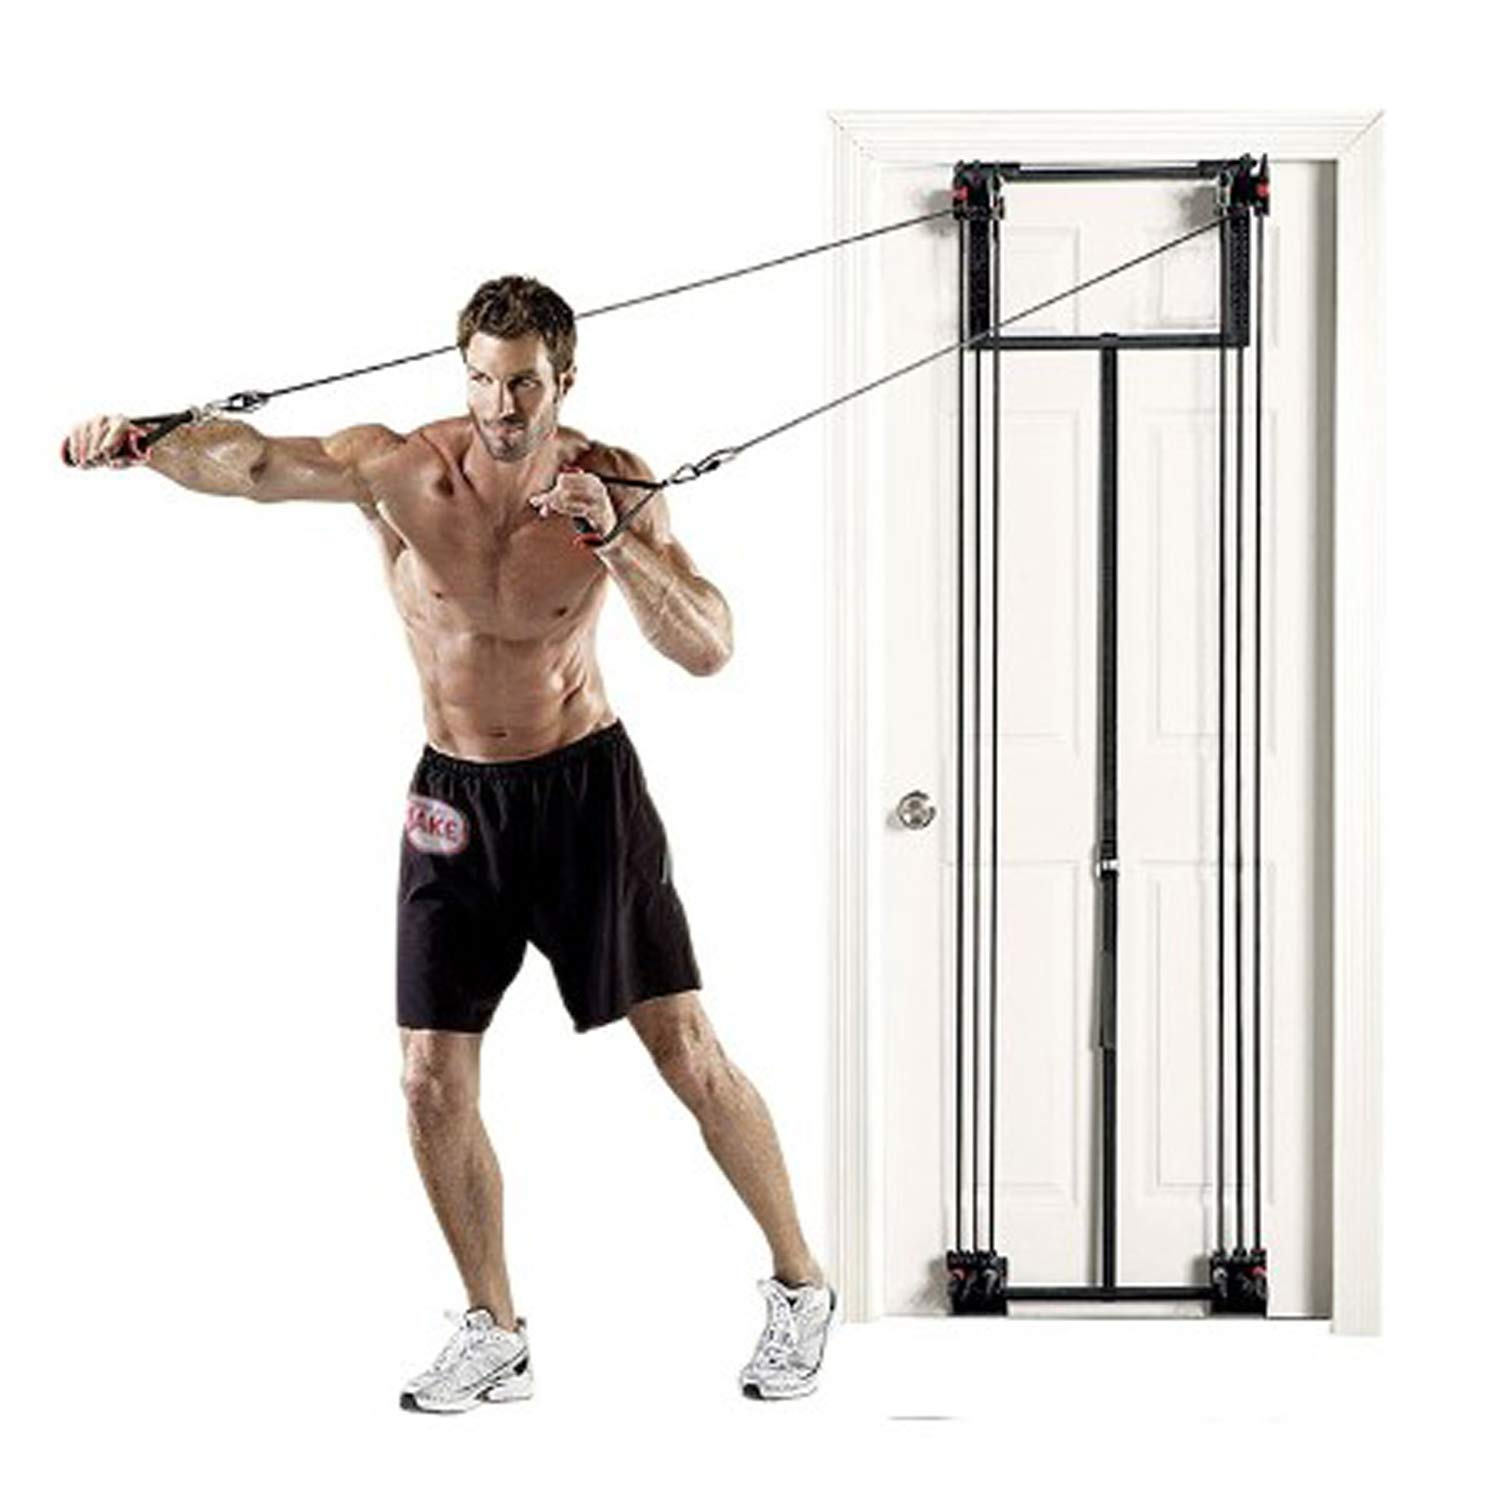 Weider Tower 200 Door Gym to Make Home Gym For Harder Training